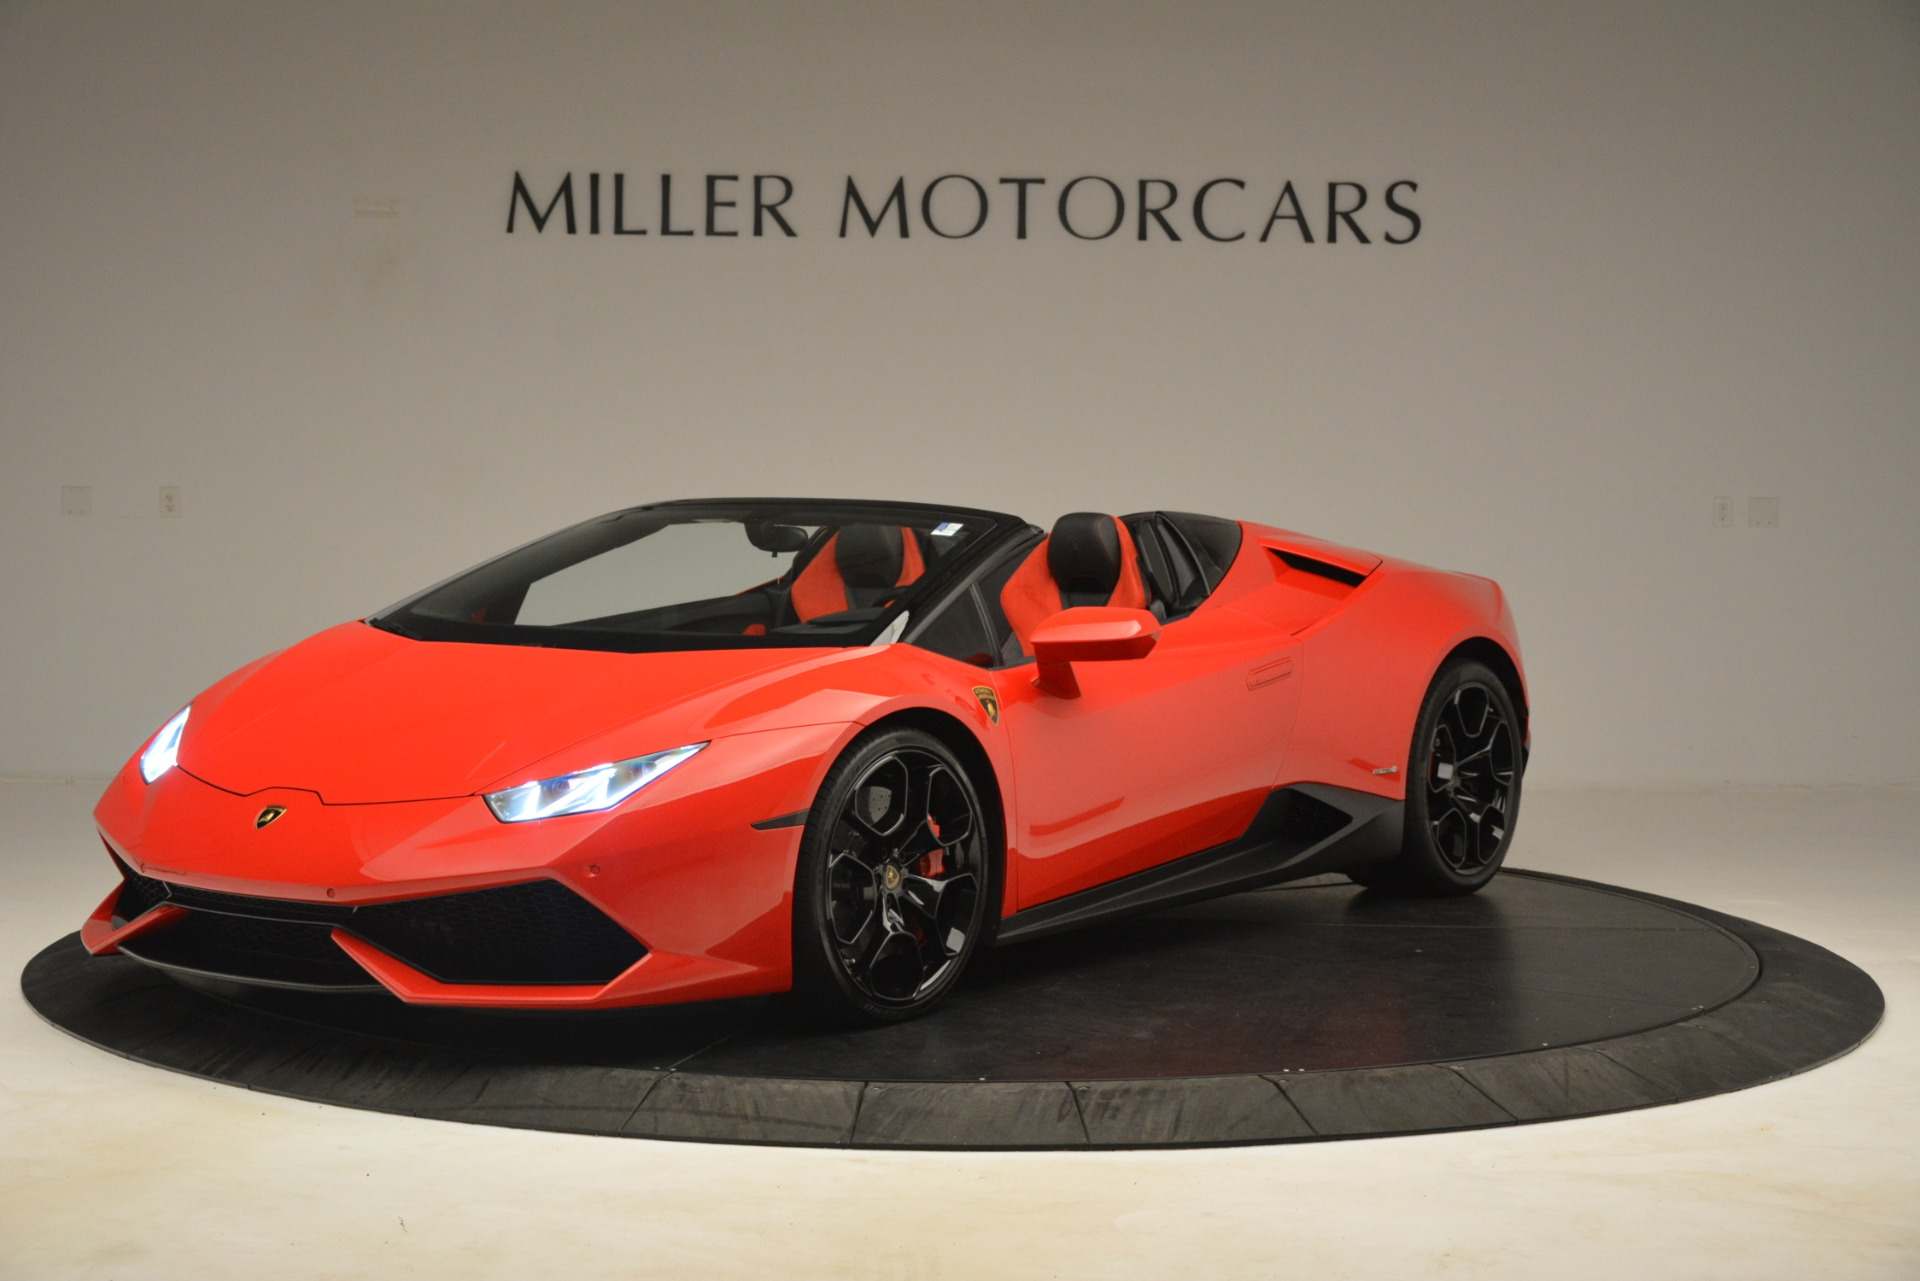 Used 2017 Lamborghini Huracan LP 610-4 Spyder for sale Sold at McLaren Greenwich in Greenwich CT 06830 1